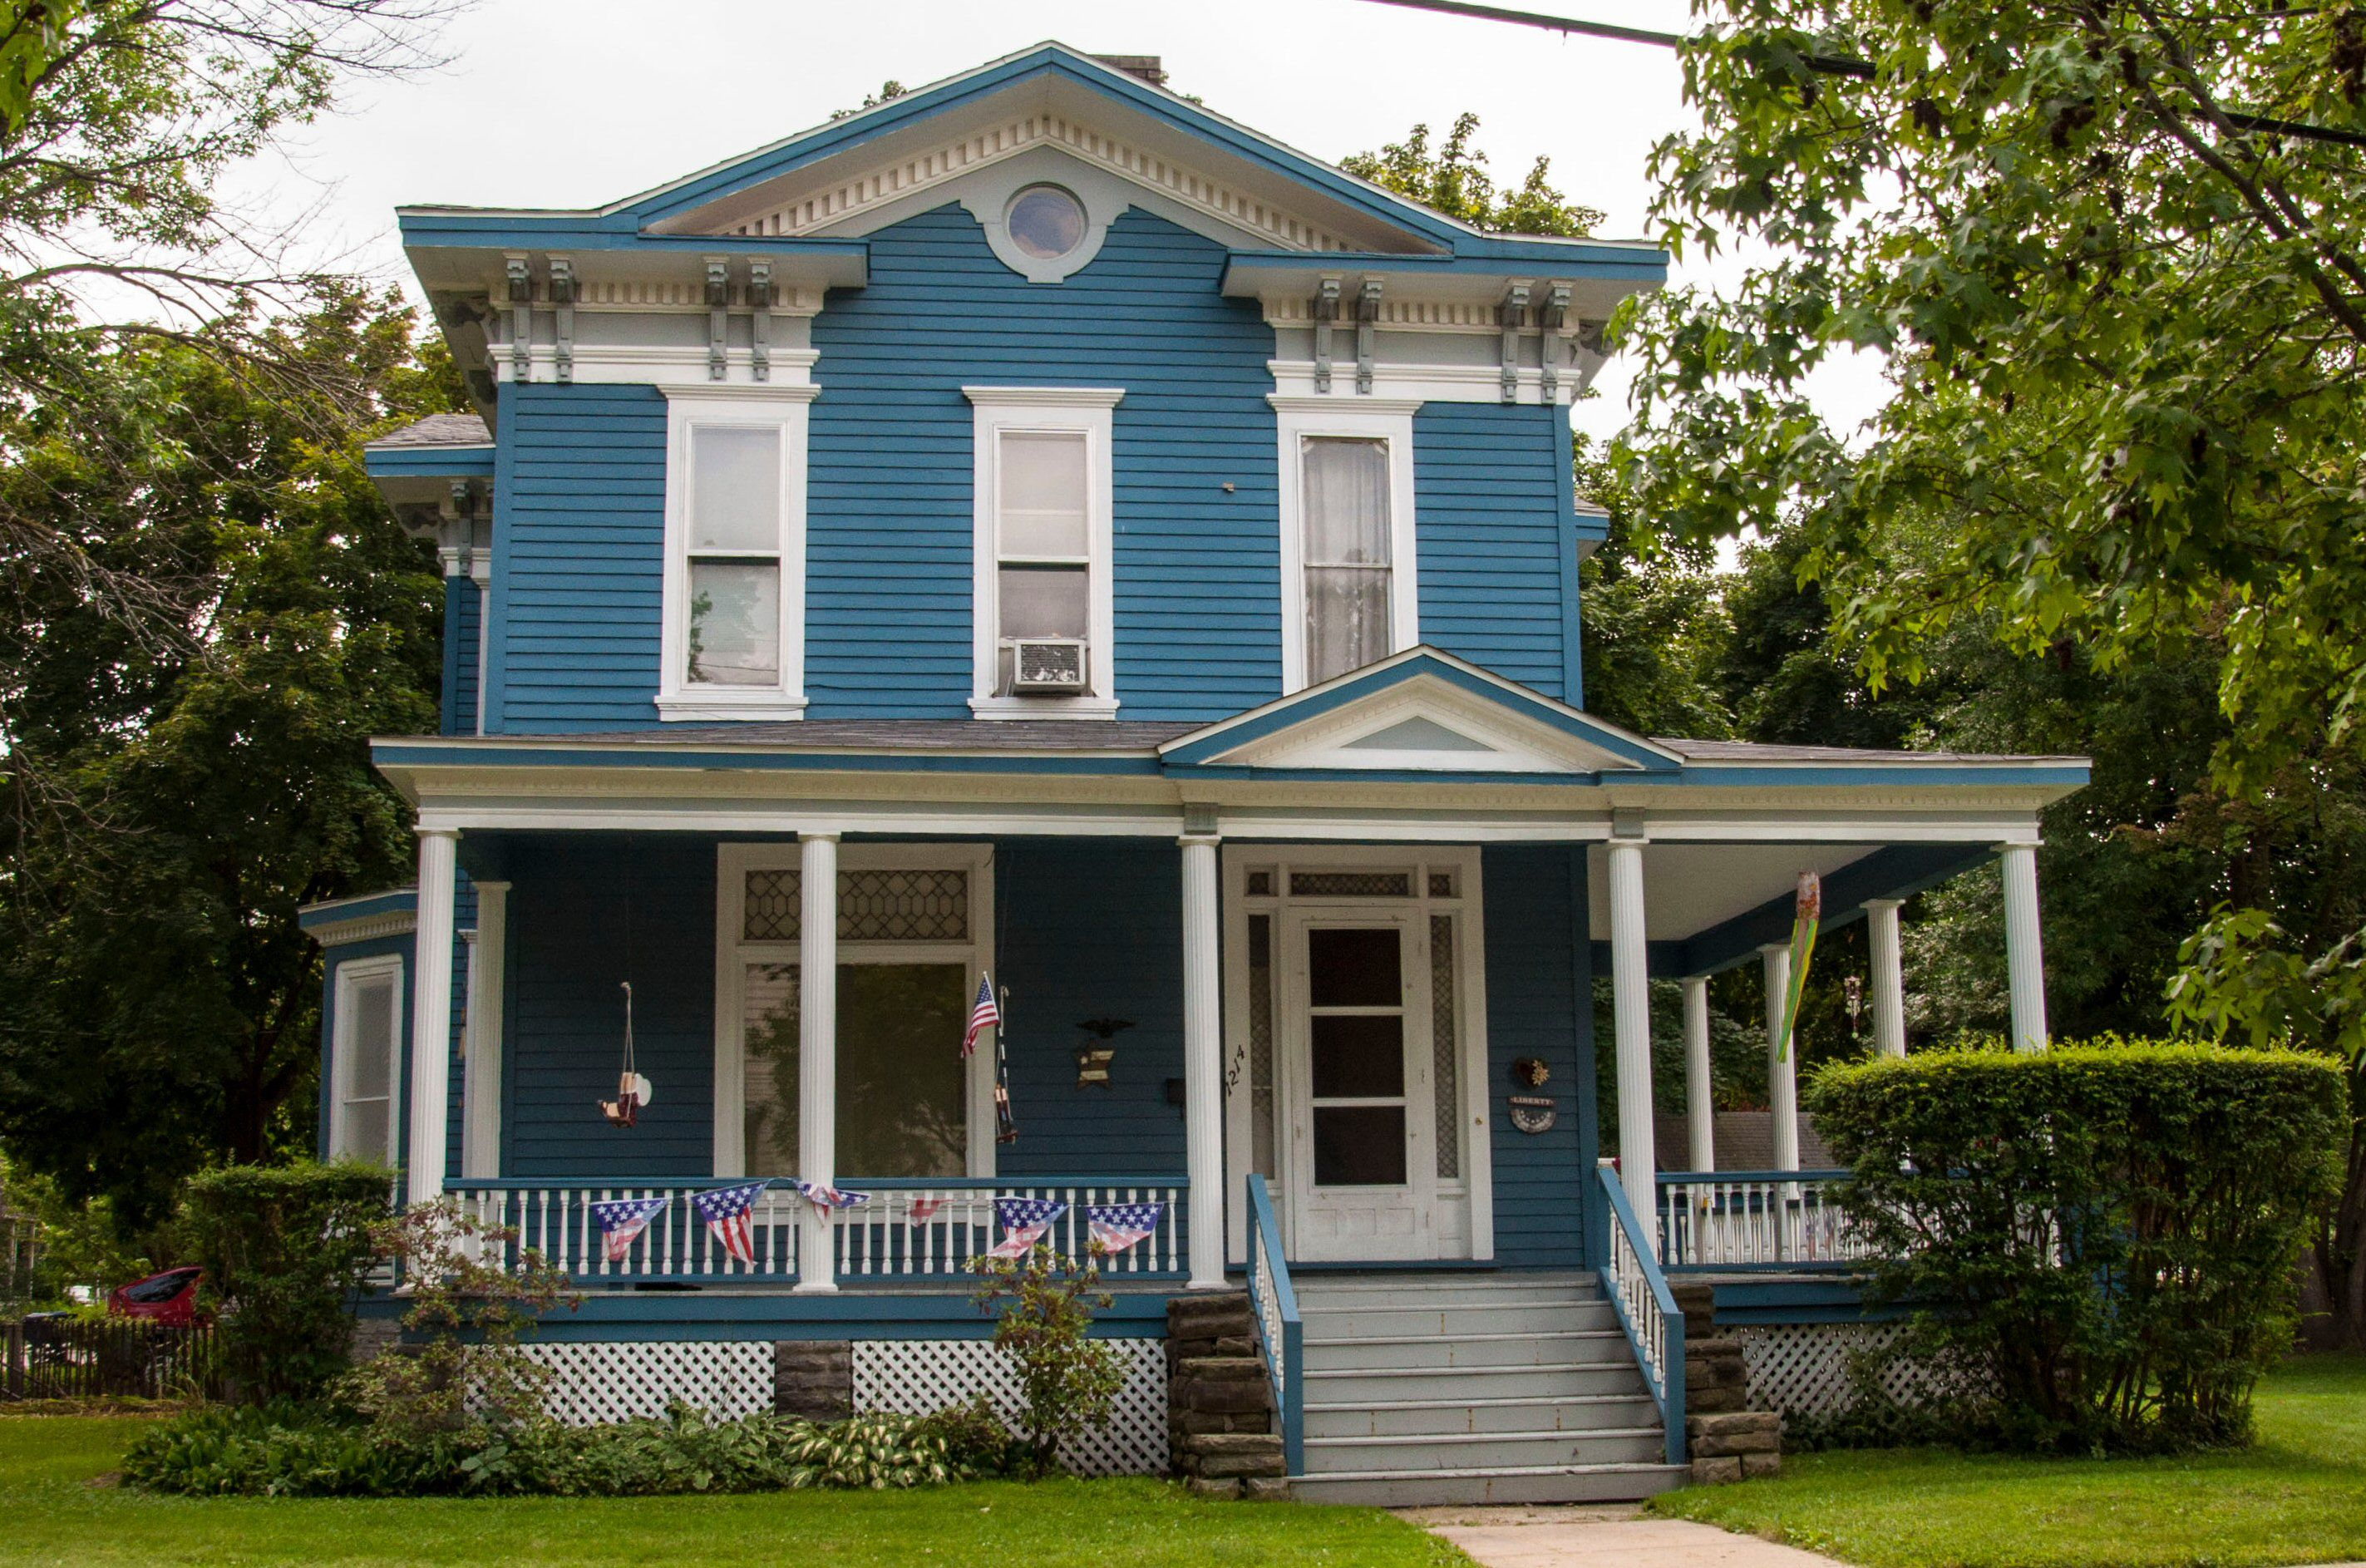 Two Story Victorian House Blue With White Trim Wrap Around Porch